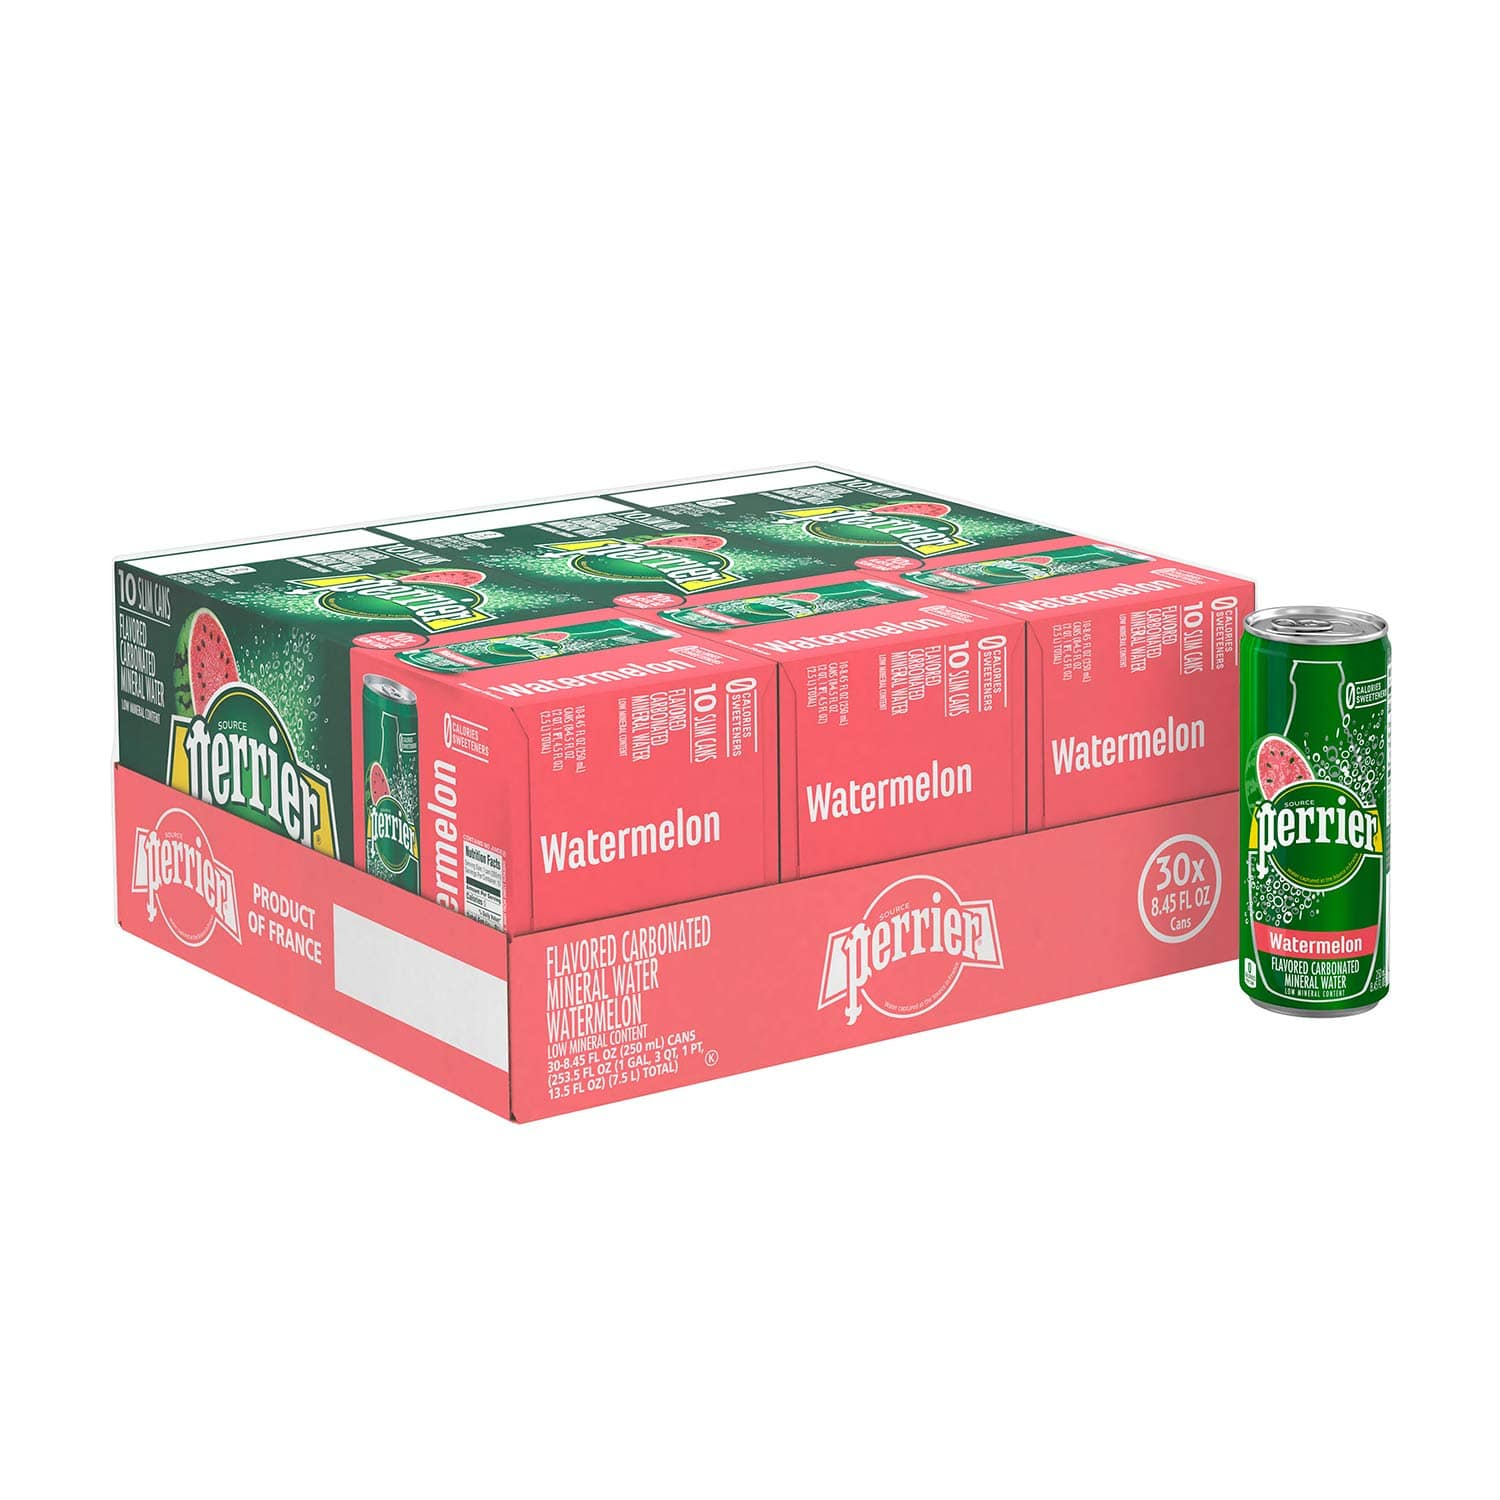 Perrier Sparkling Mineral Water, Watermelon, 8.45 fl oz. Slim Cans (Pack of 30) S&S $8.52